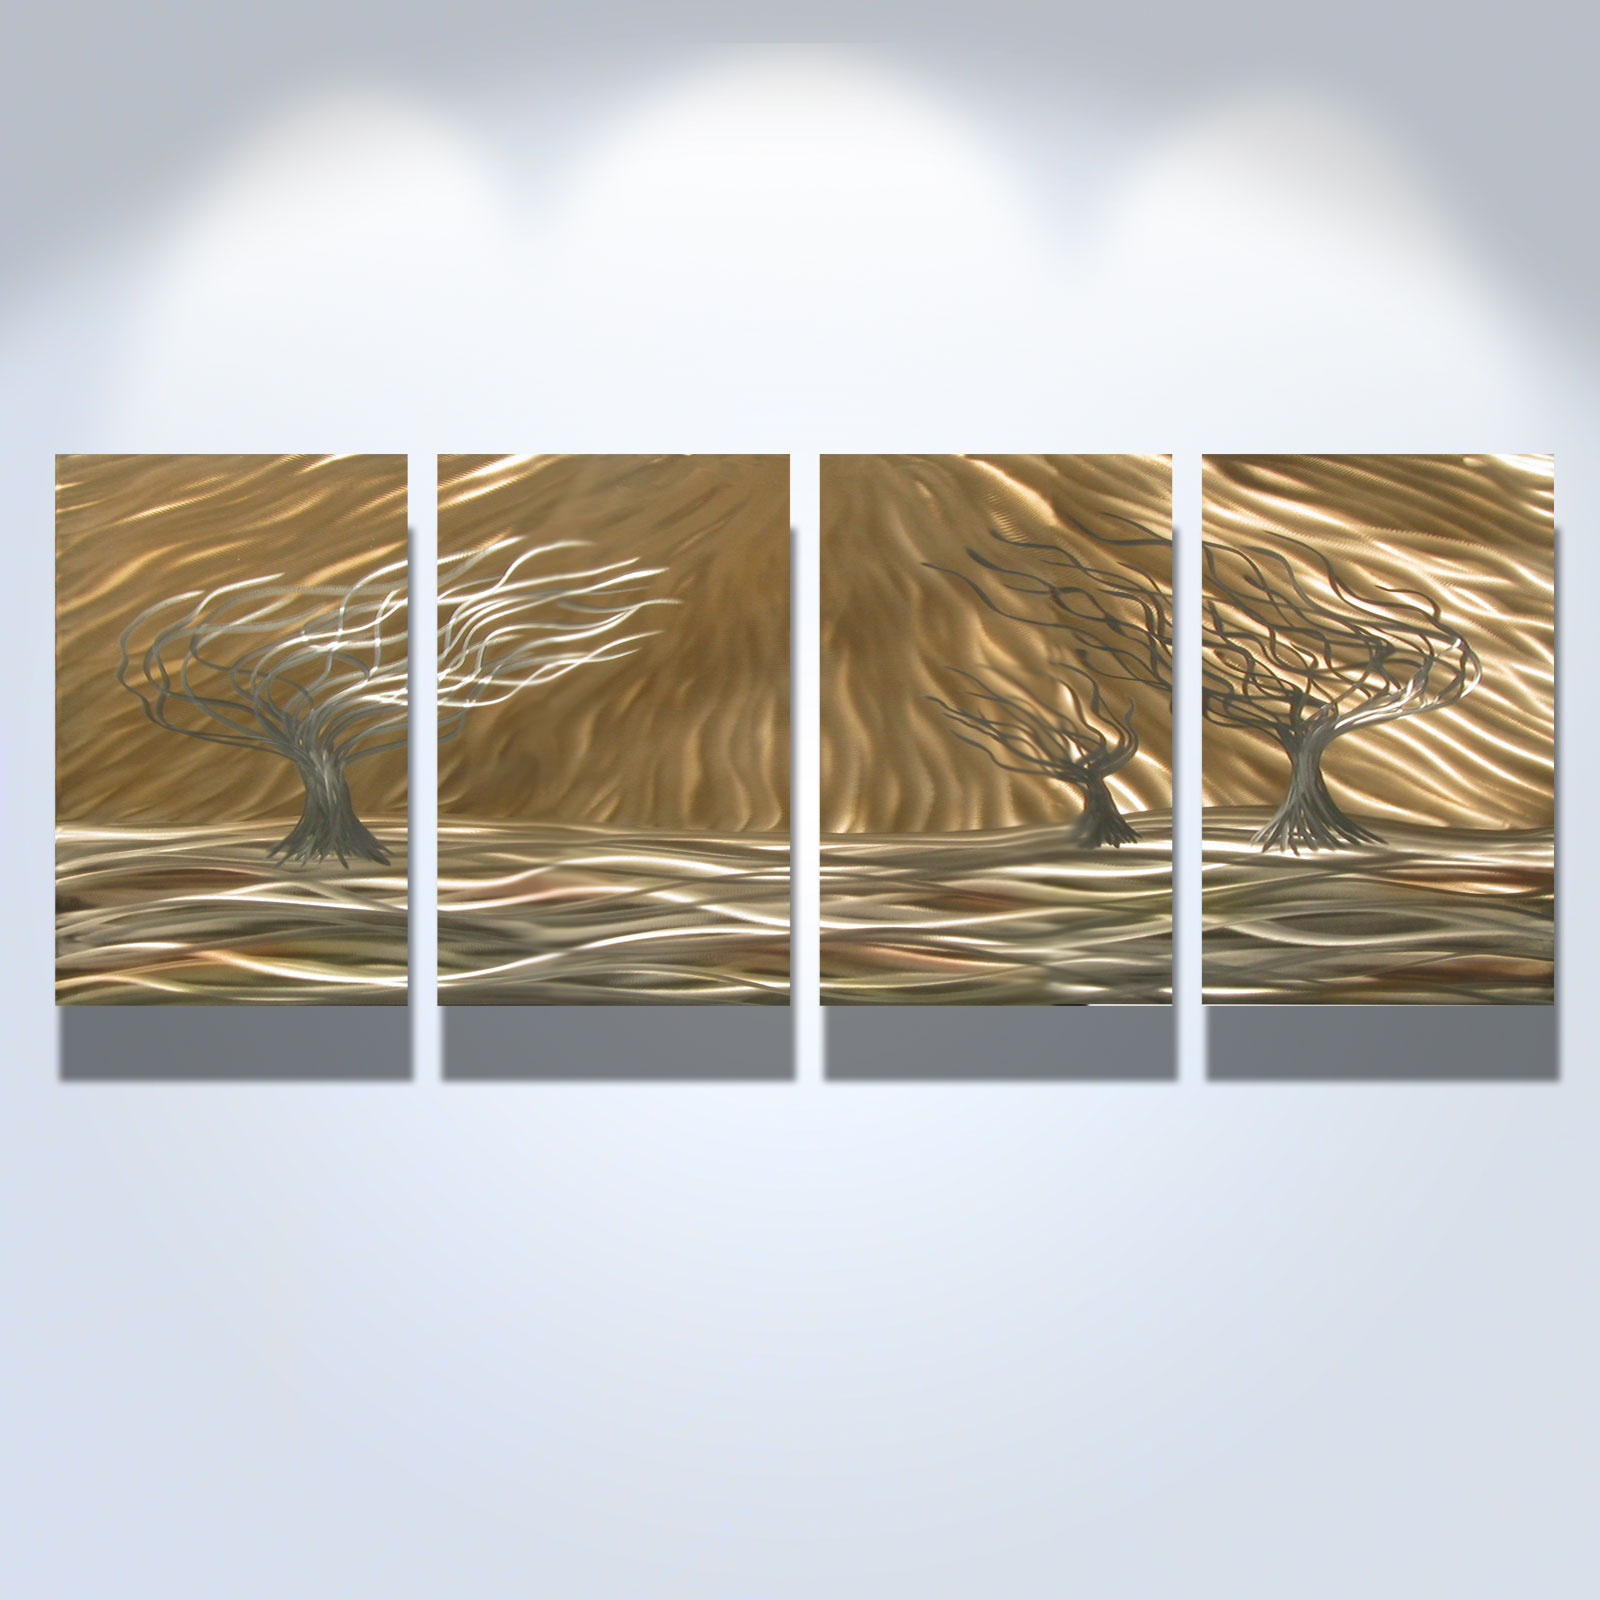 Bon 3 Trees 4 Panel   Abstract Metal Wall Art Contemporary Modern Decor